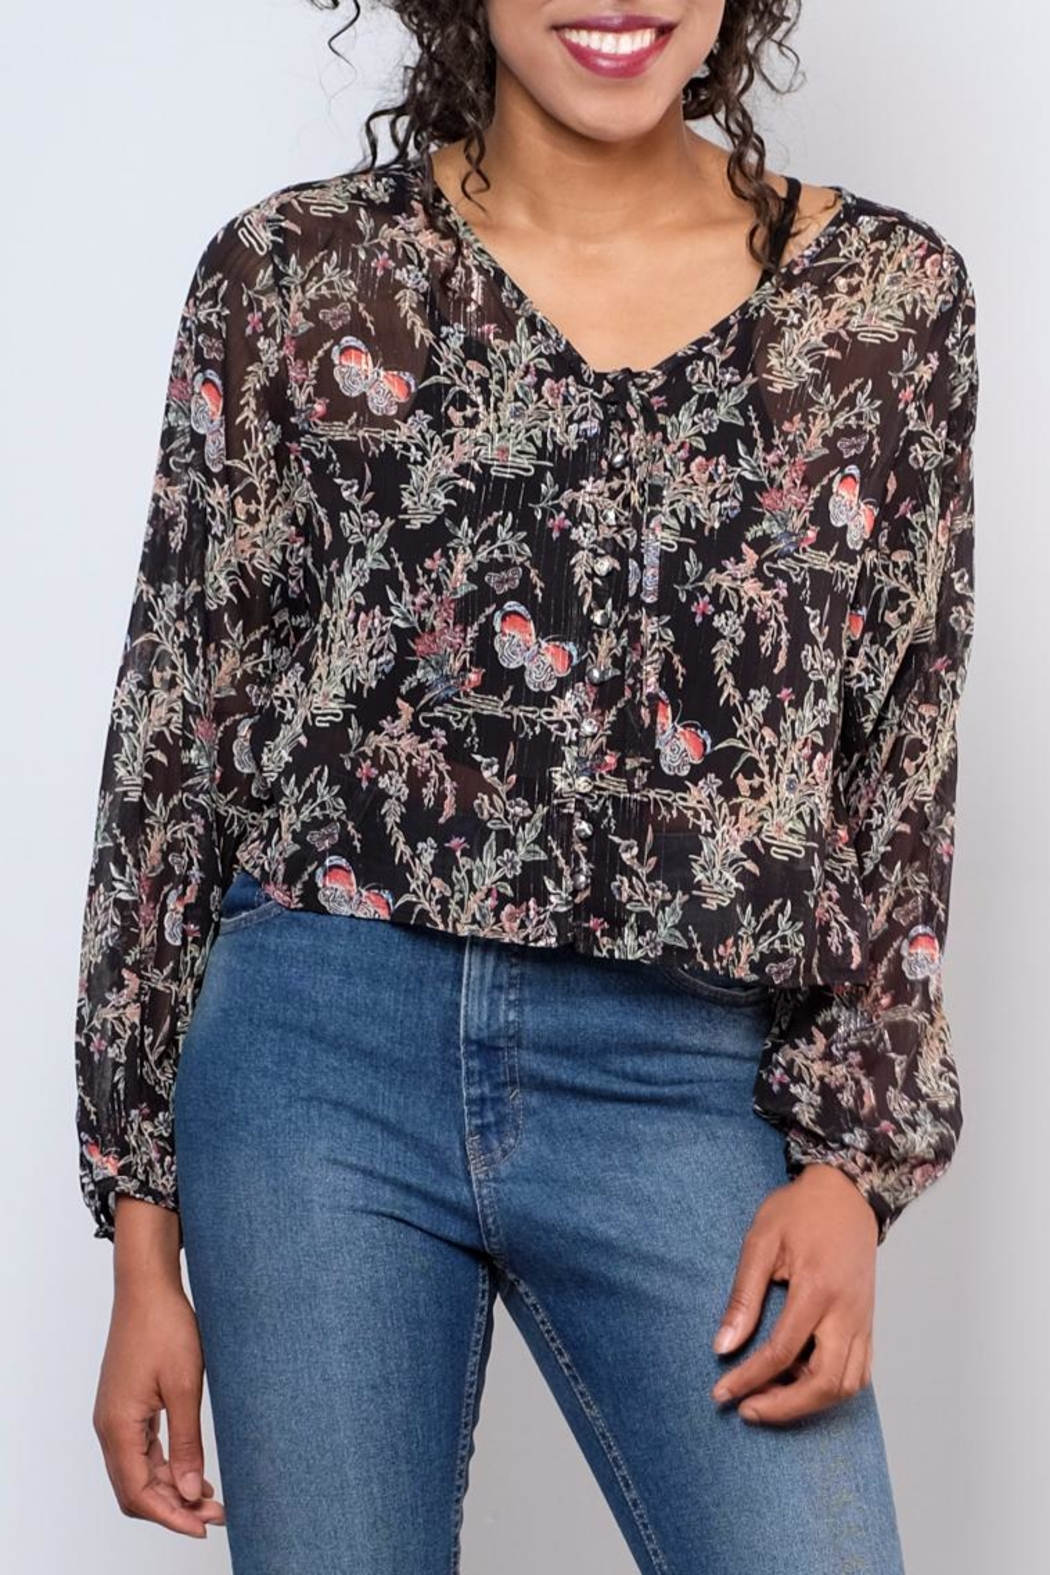 LoveRiche Sheer Printed Top - Main Image